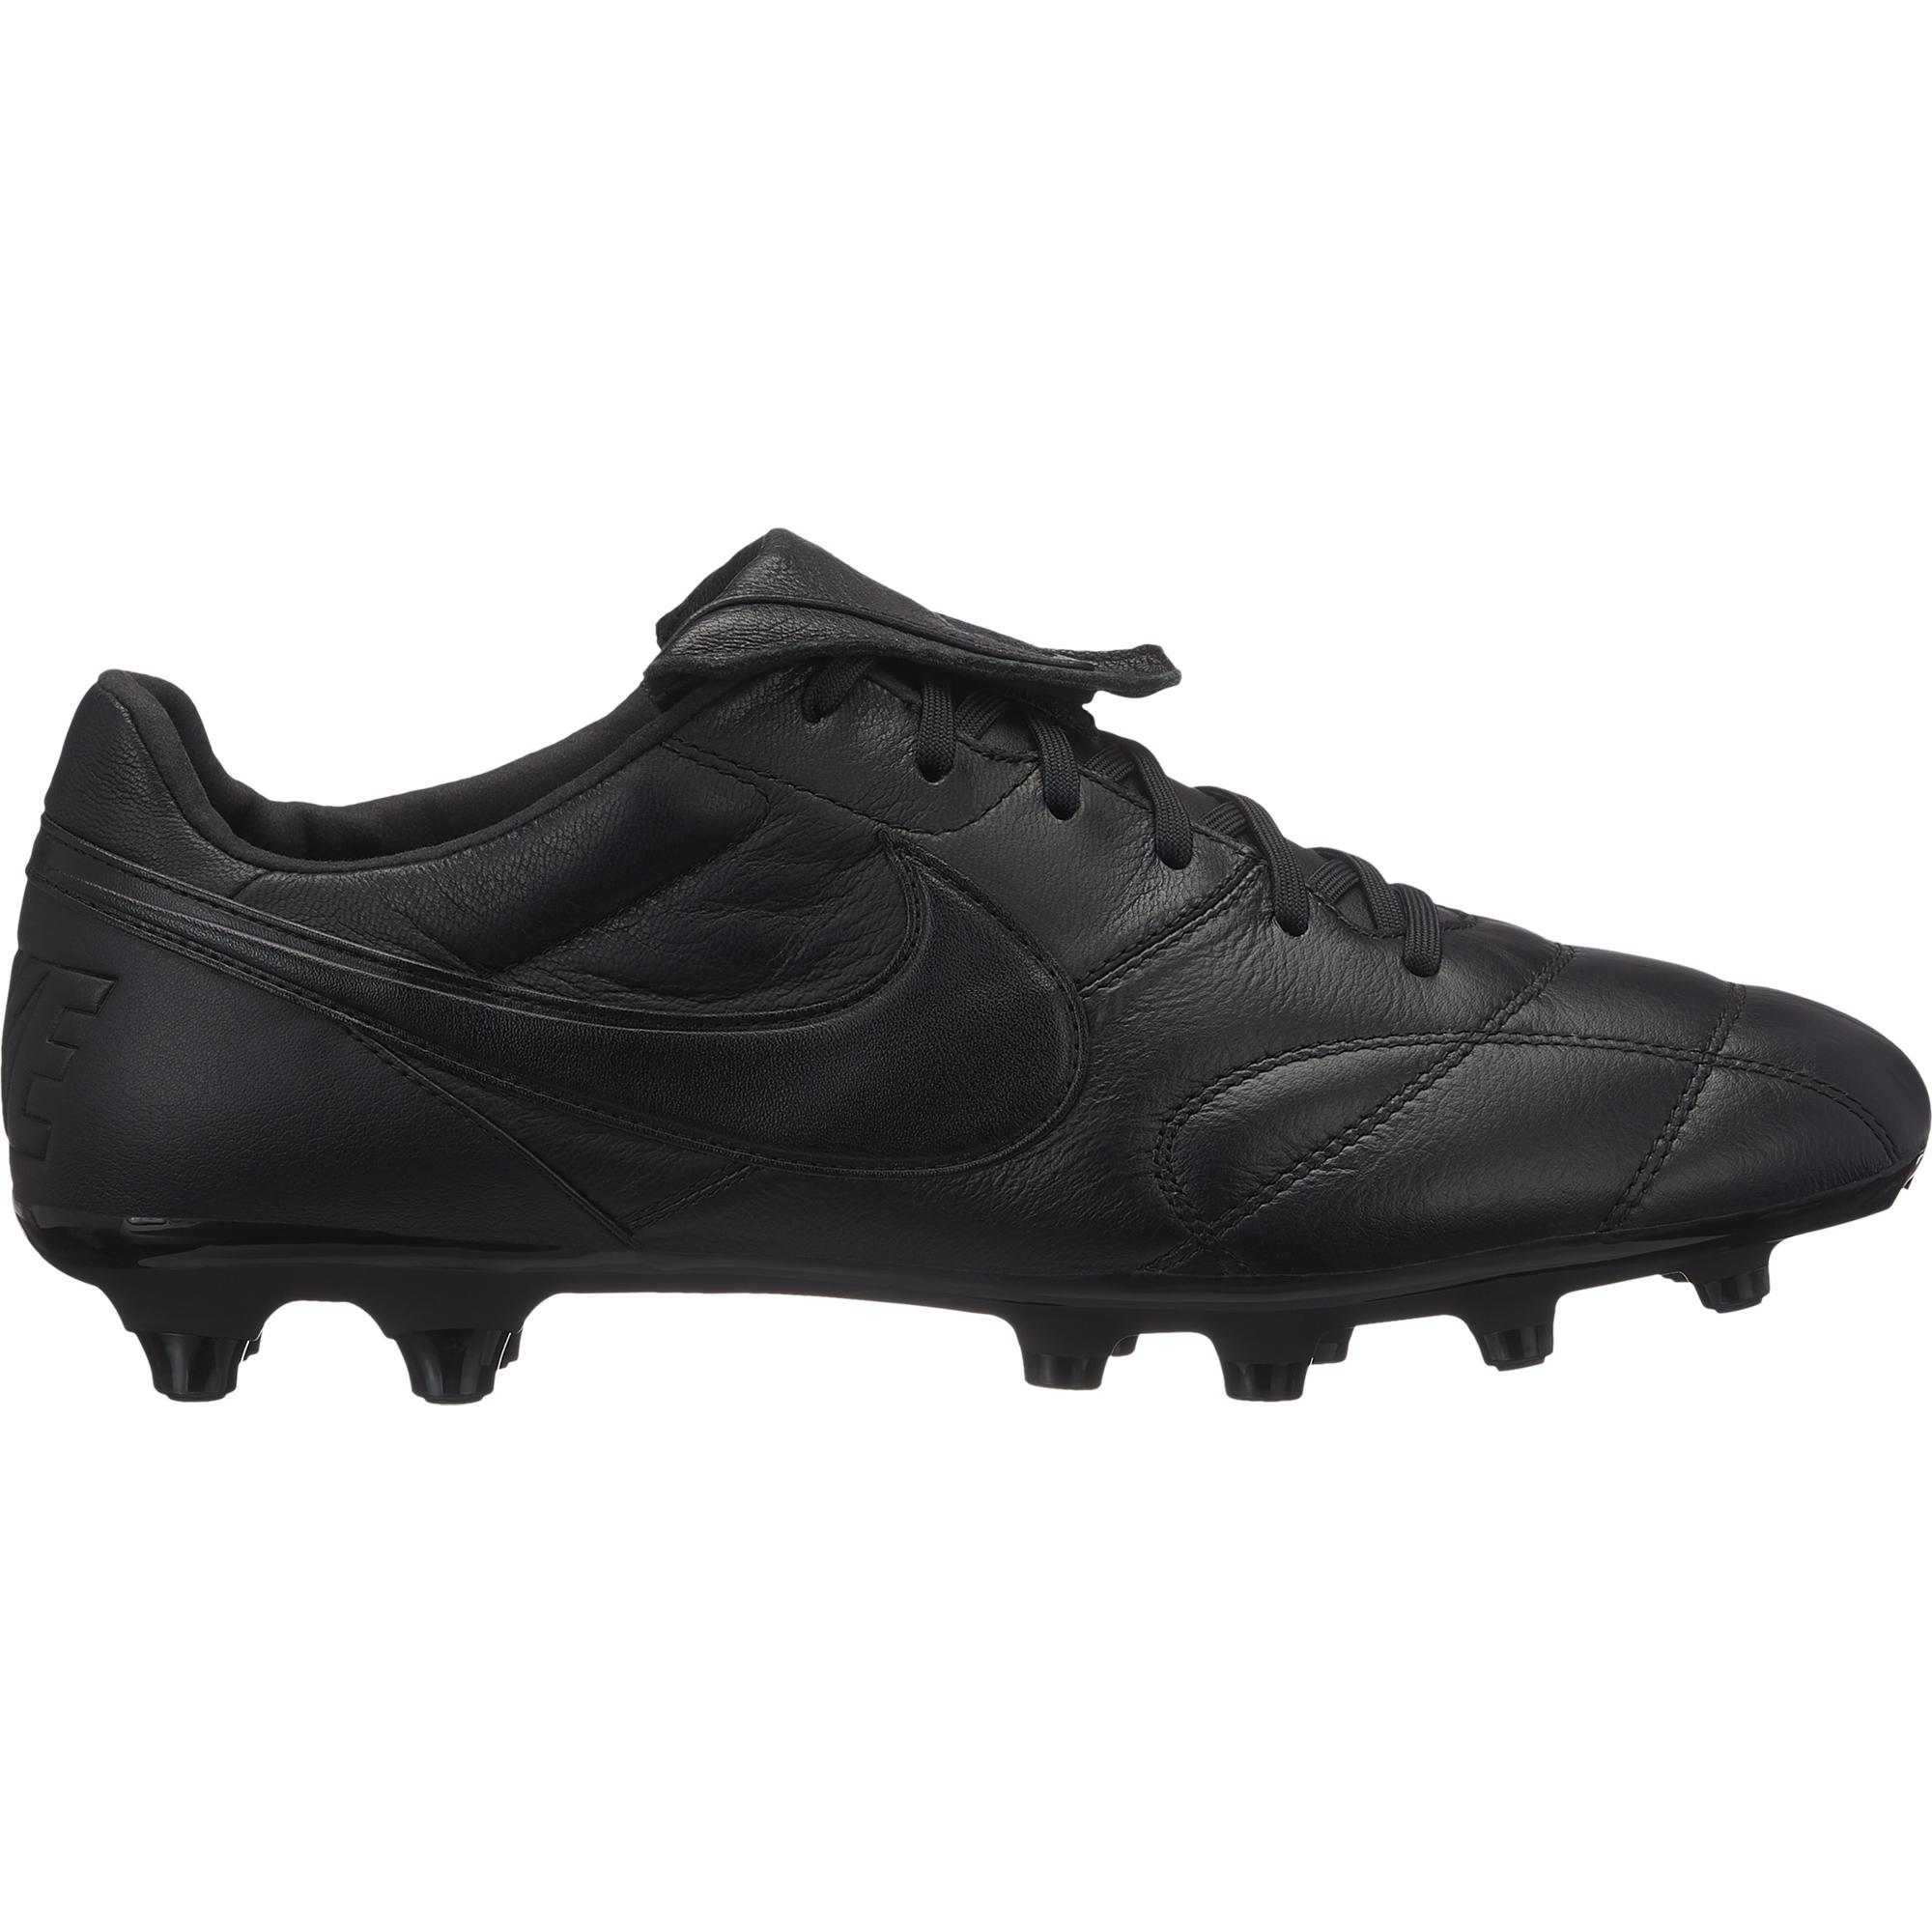 0a6171f64 Nike Football Shoes Premier Ii Fg Black/black - Tifoshop.com